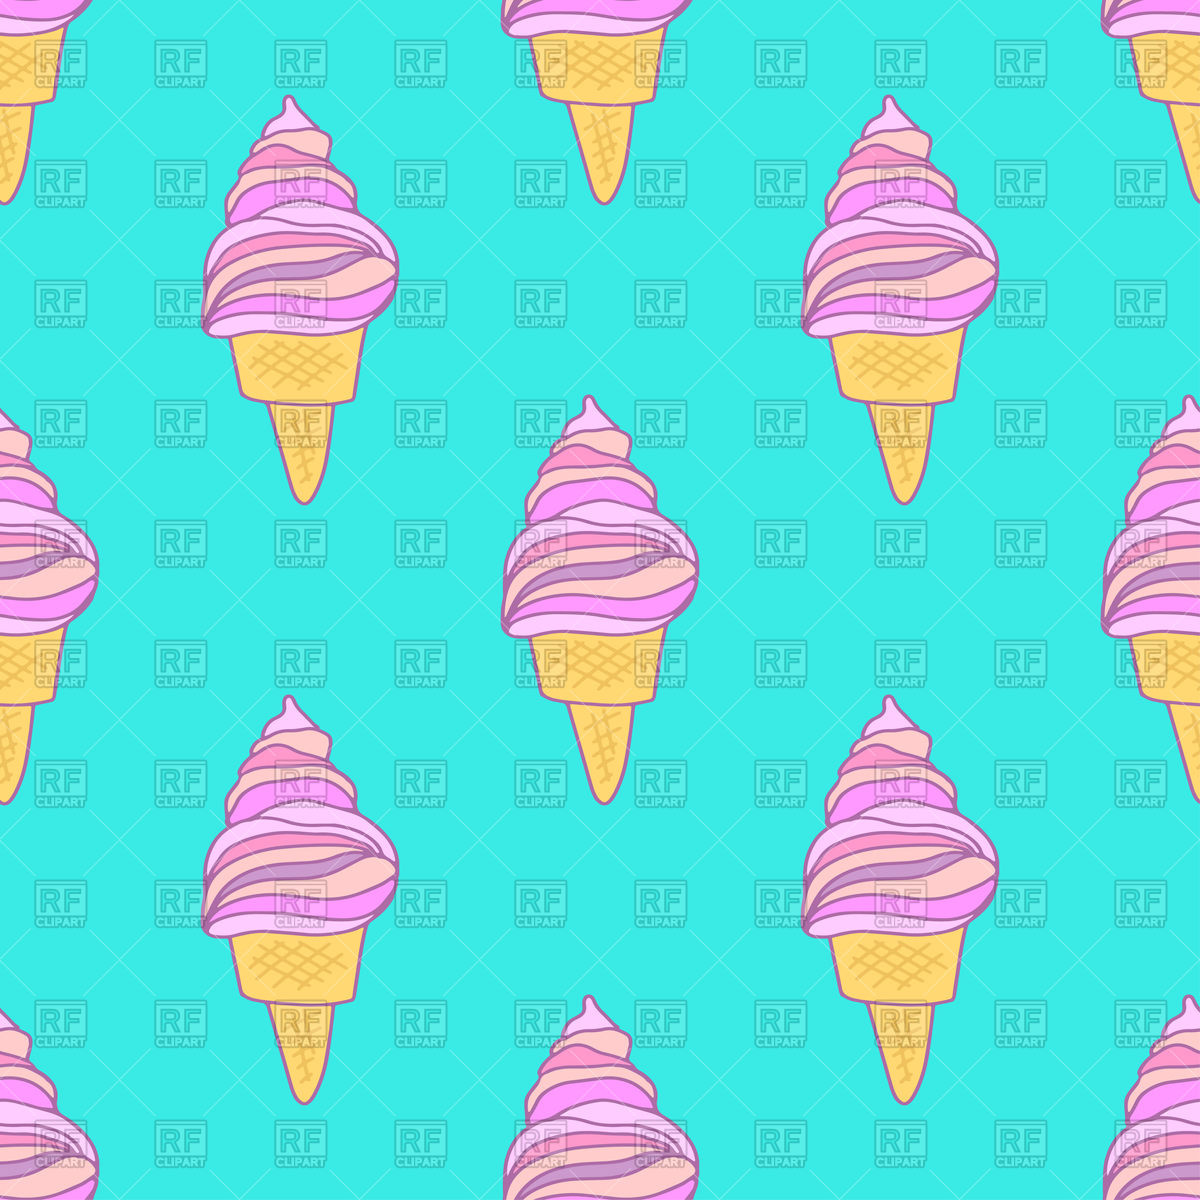 1200x1200 Cute Pink Ice Cream Cones Seamless Pattern Royalty Free Vector